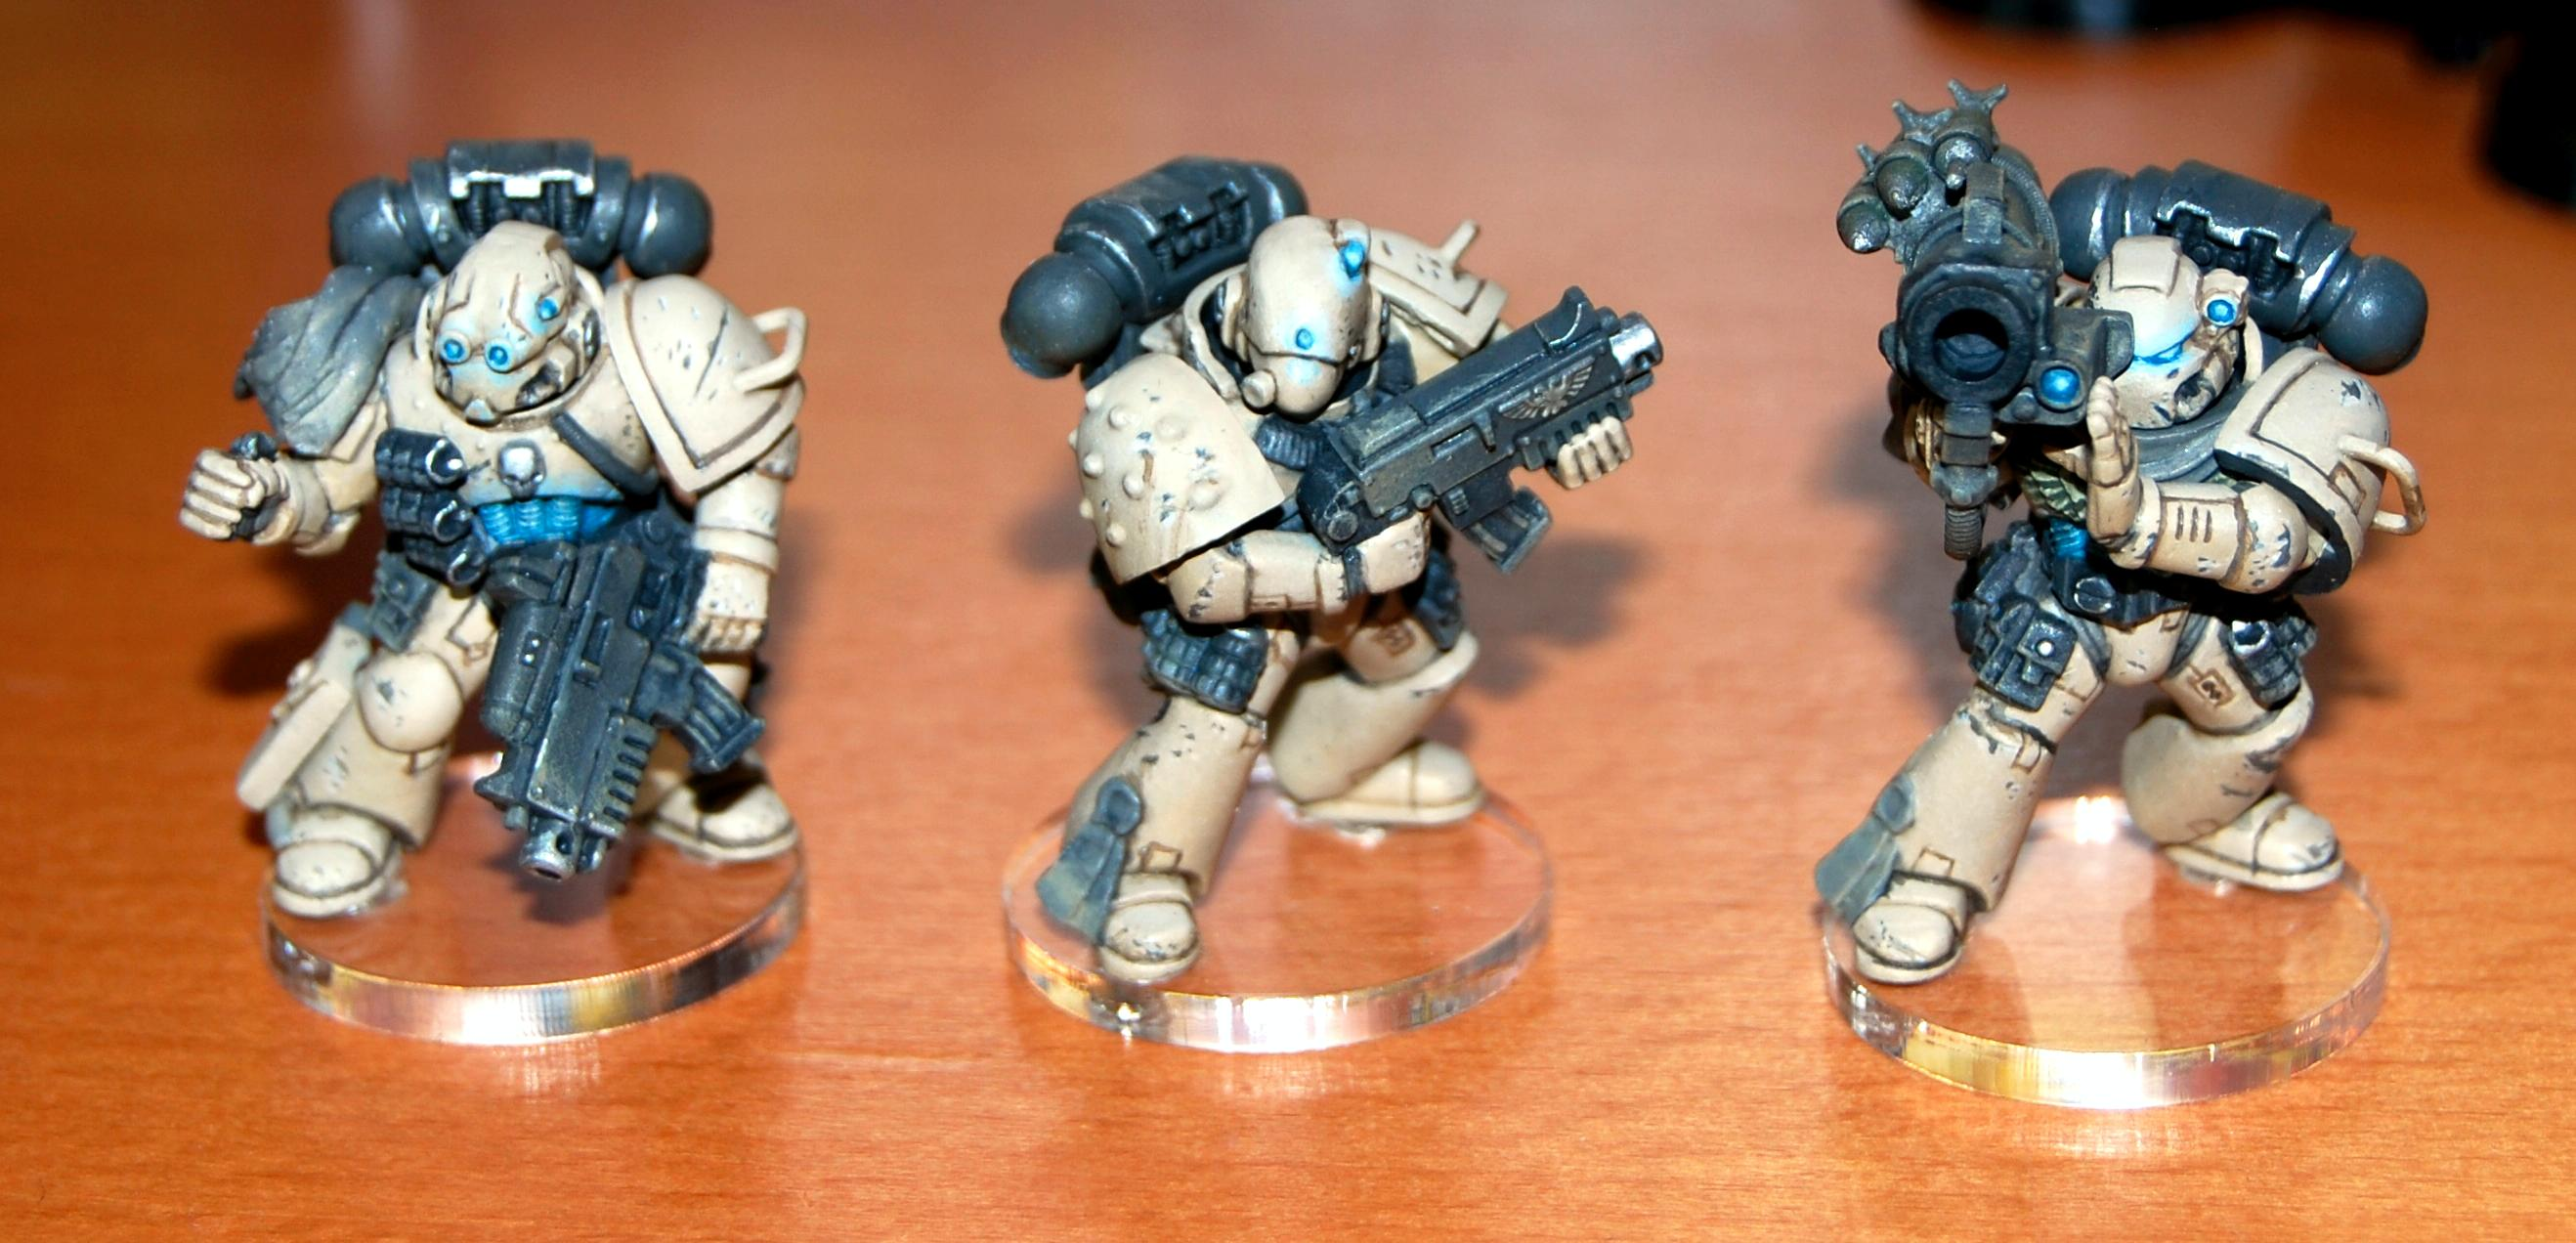 Object Source Lighting, Space Marines, Warhammer 40,000, Weathered